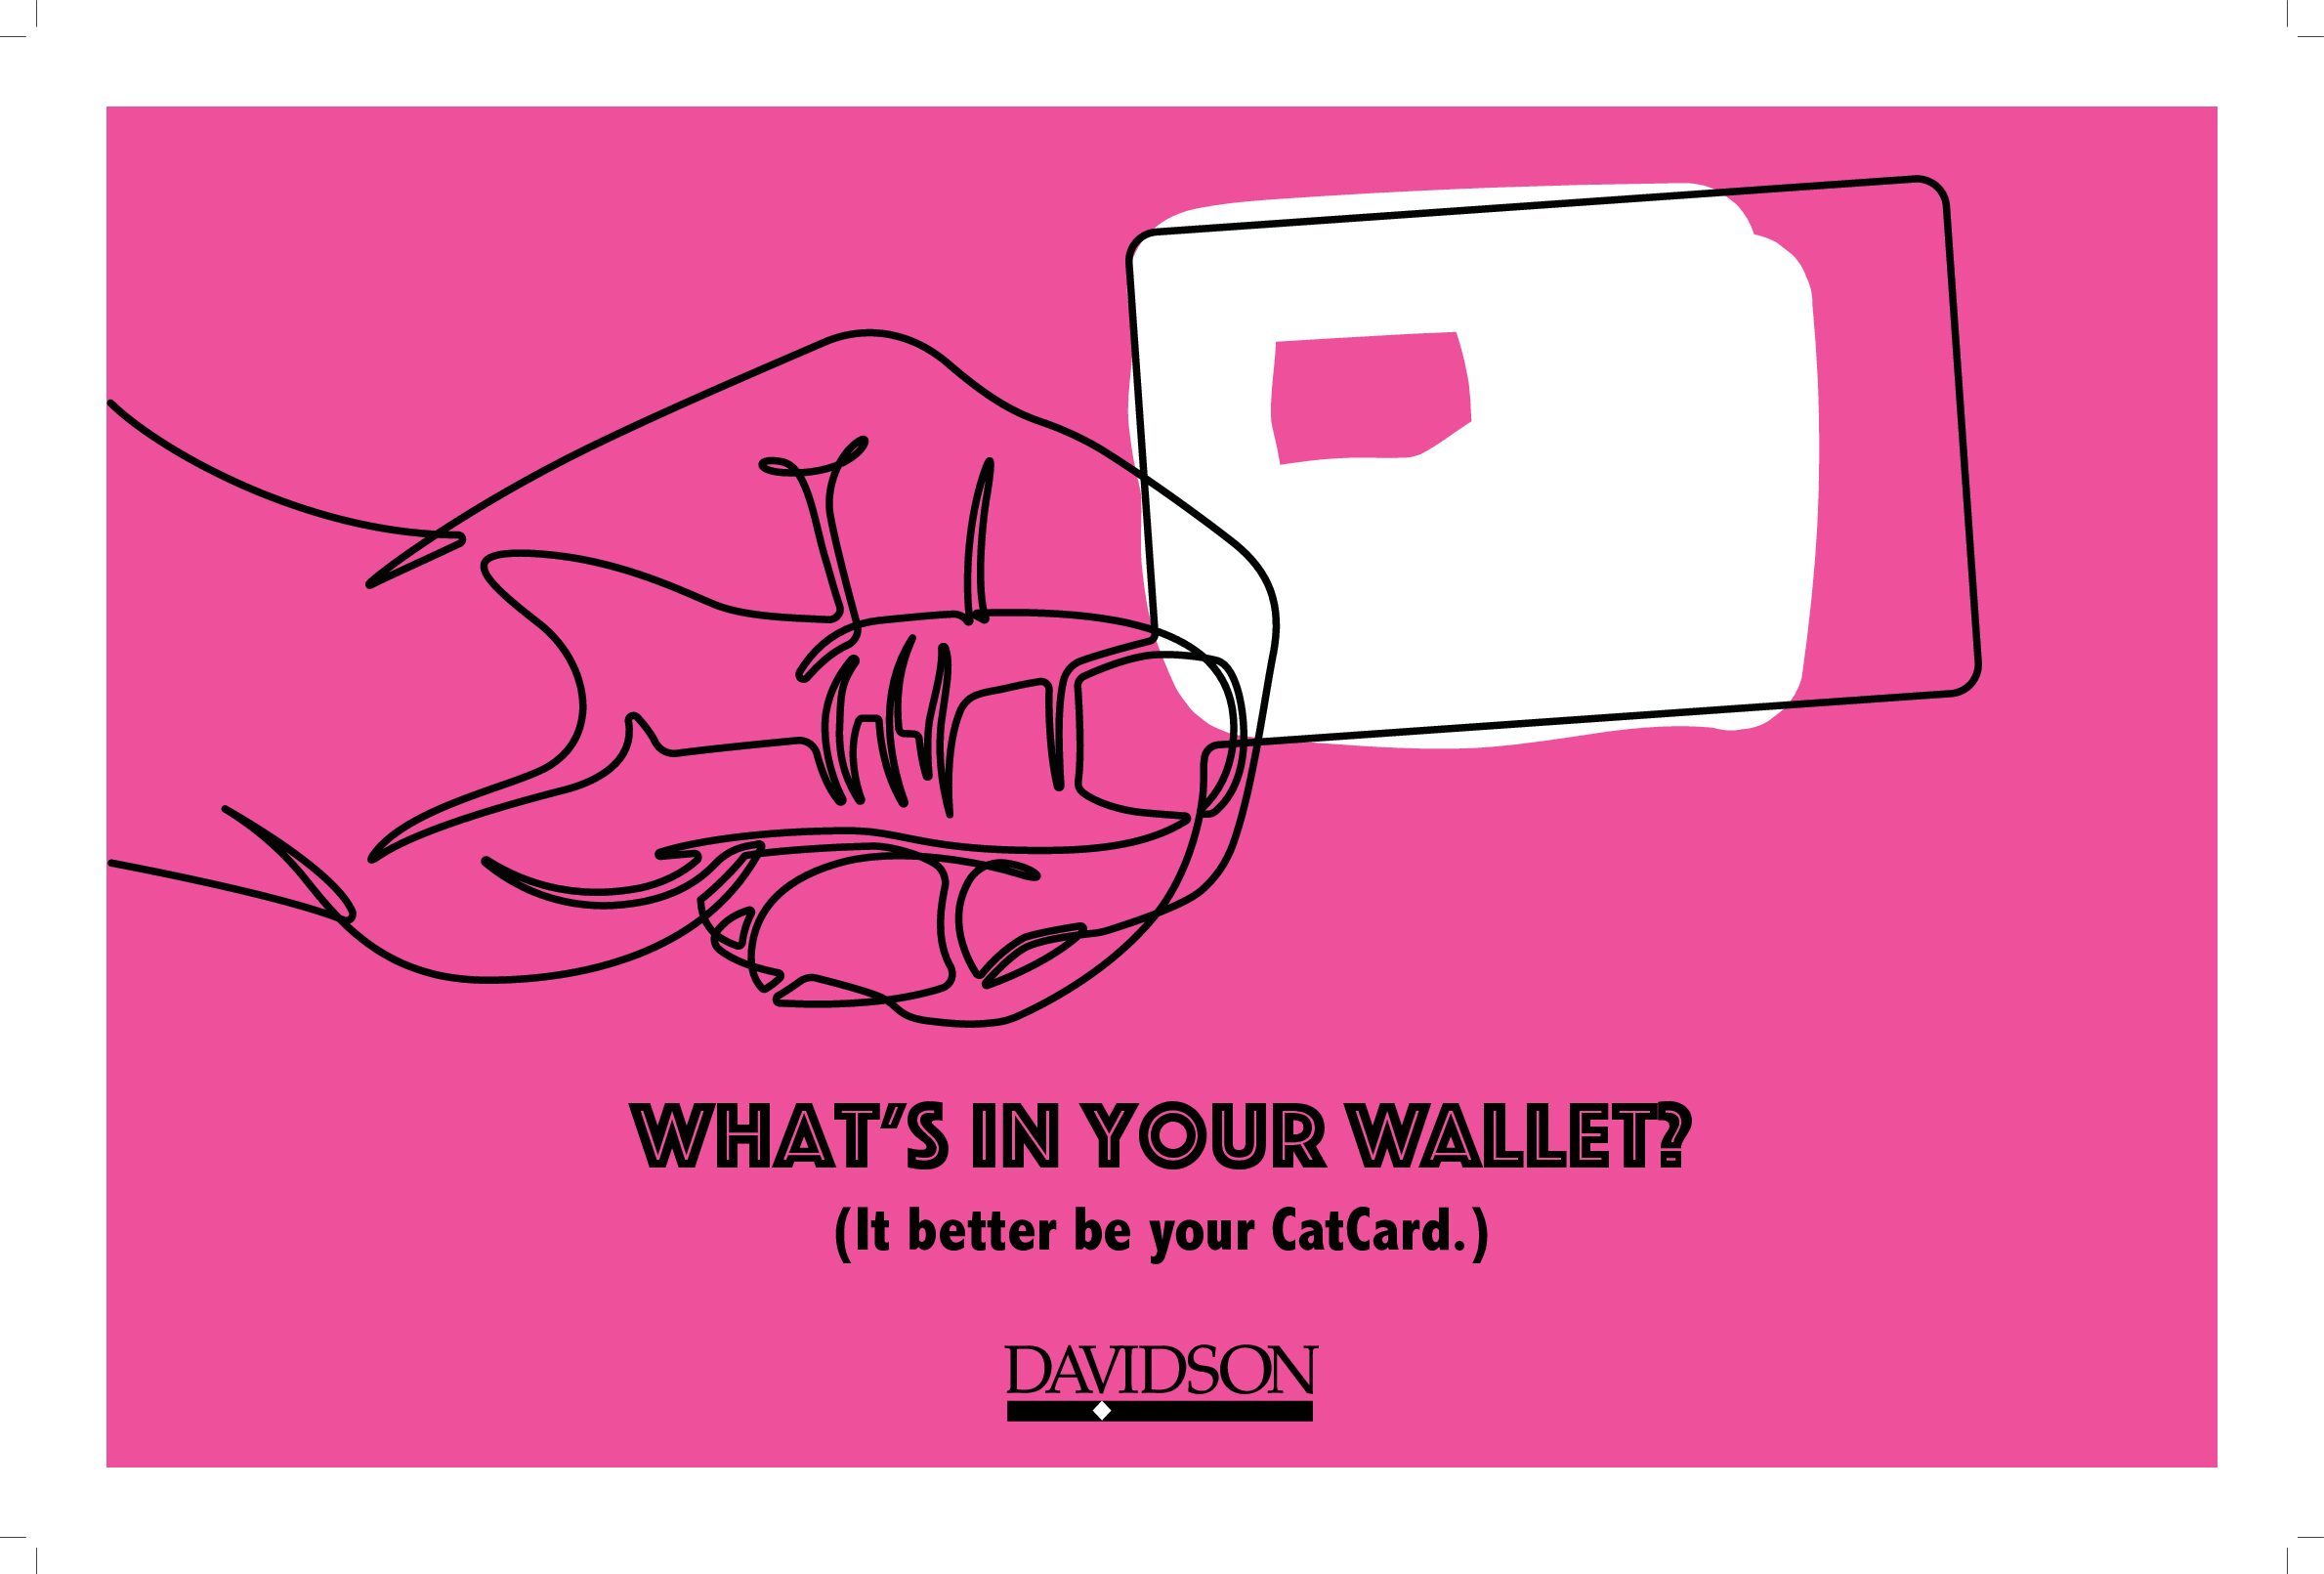 What's in your wallet? It better be your CatCard.